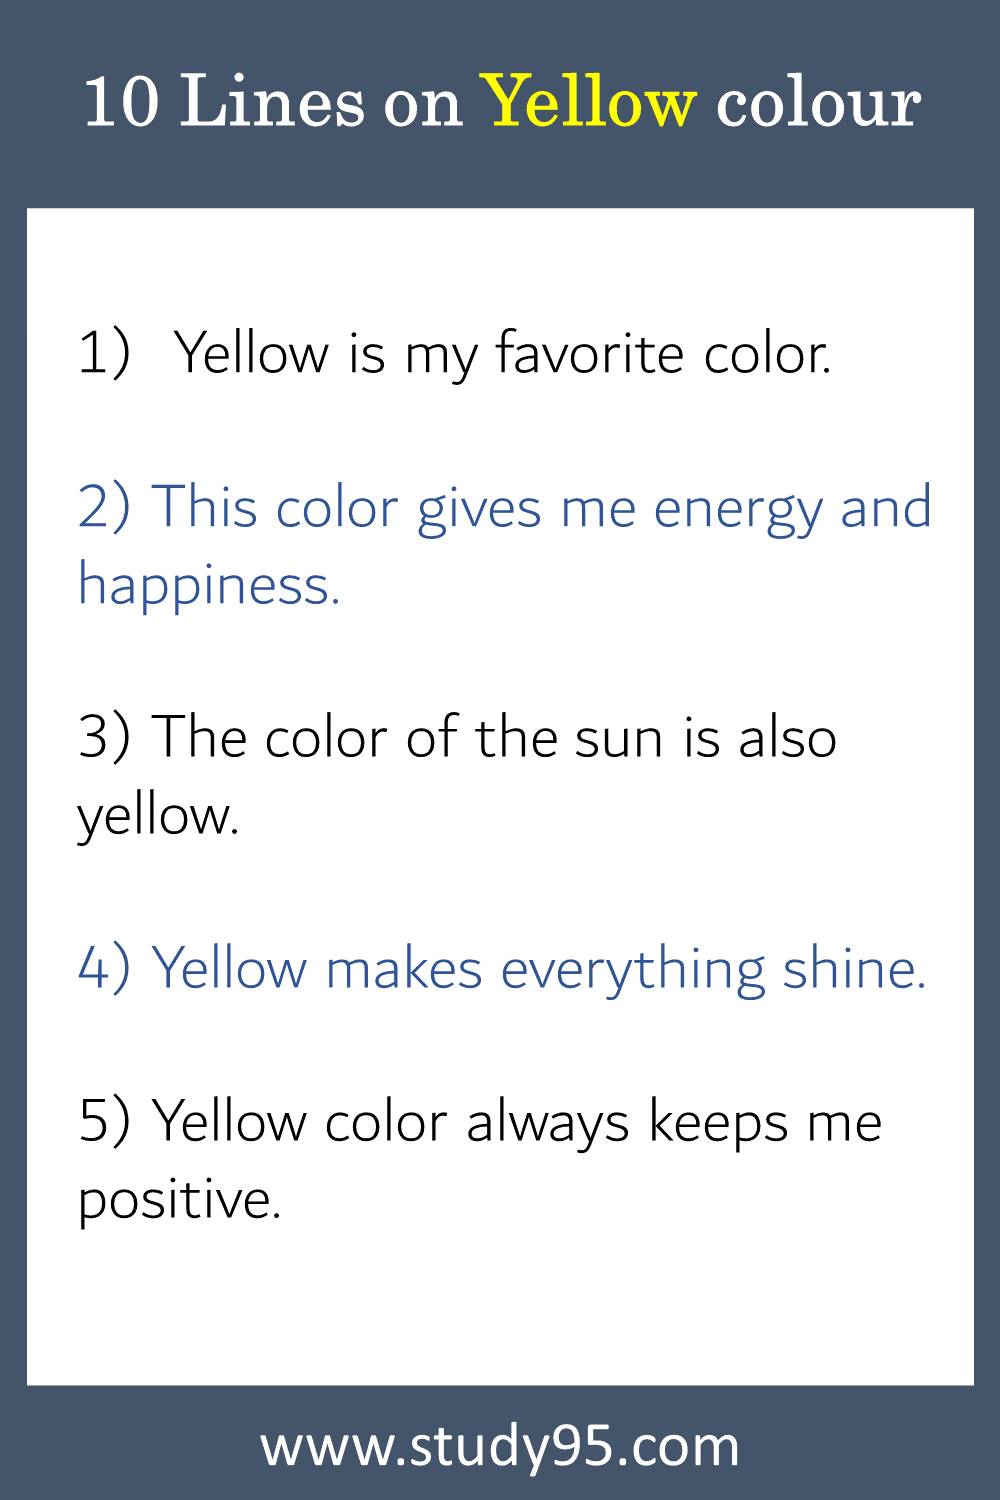 10 Lines on Yellow colour